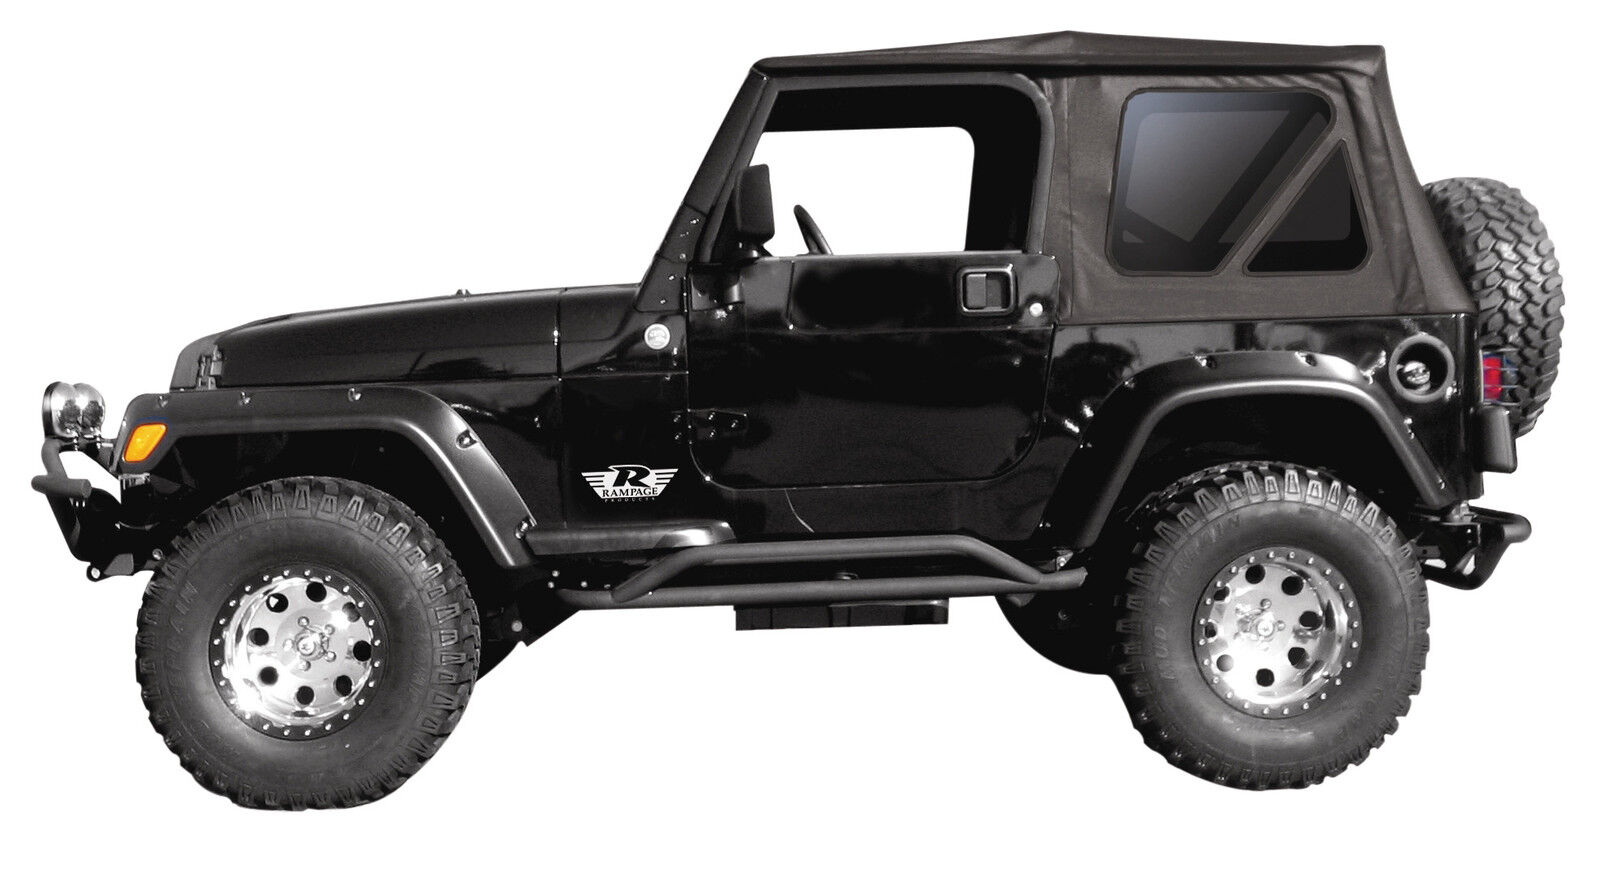 2010 2017 jeep wrangler 2 door replacement soft top tinted windows picclick. Black Bedroom Furniture Sets. Home Design Ideas